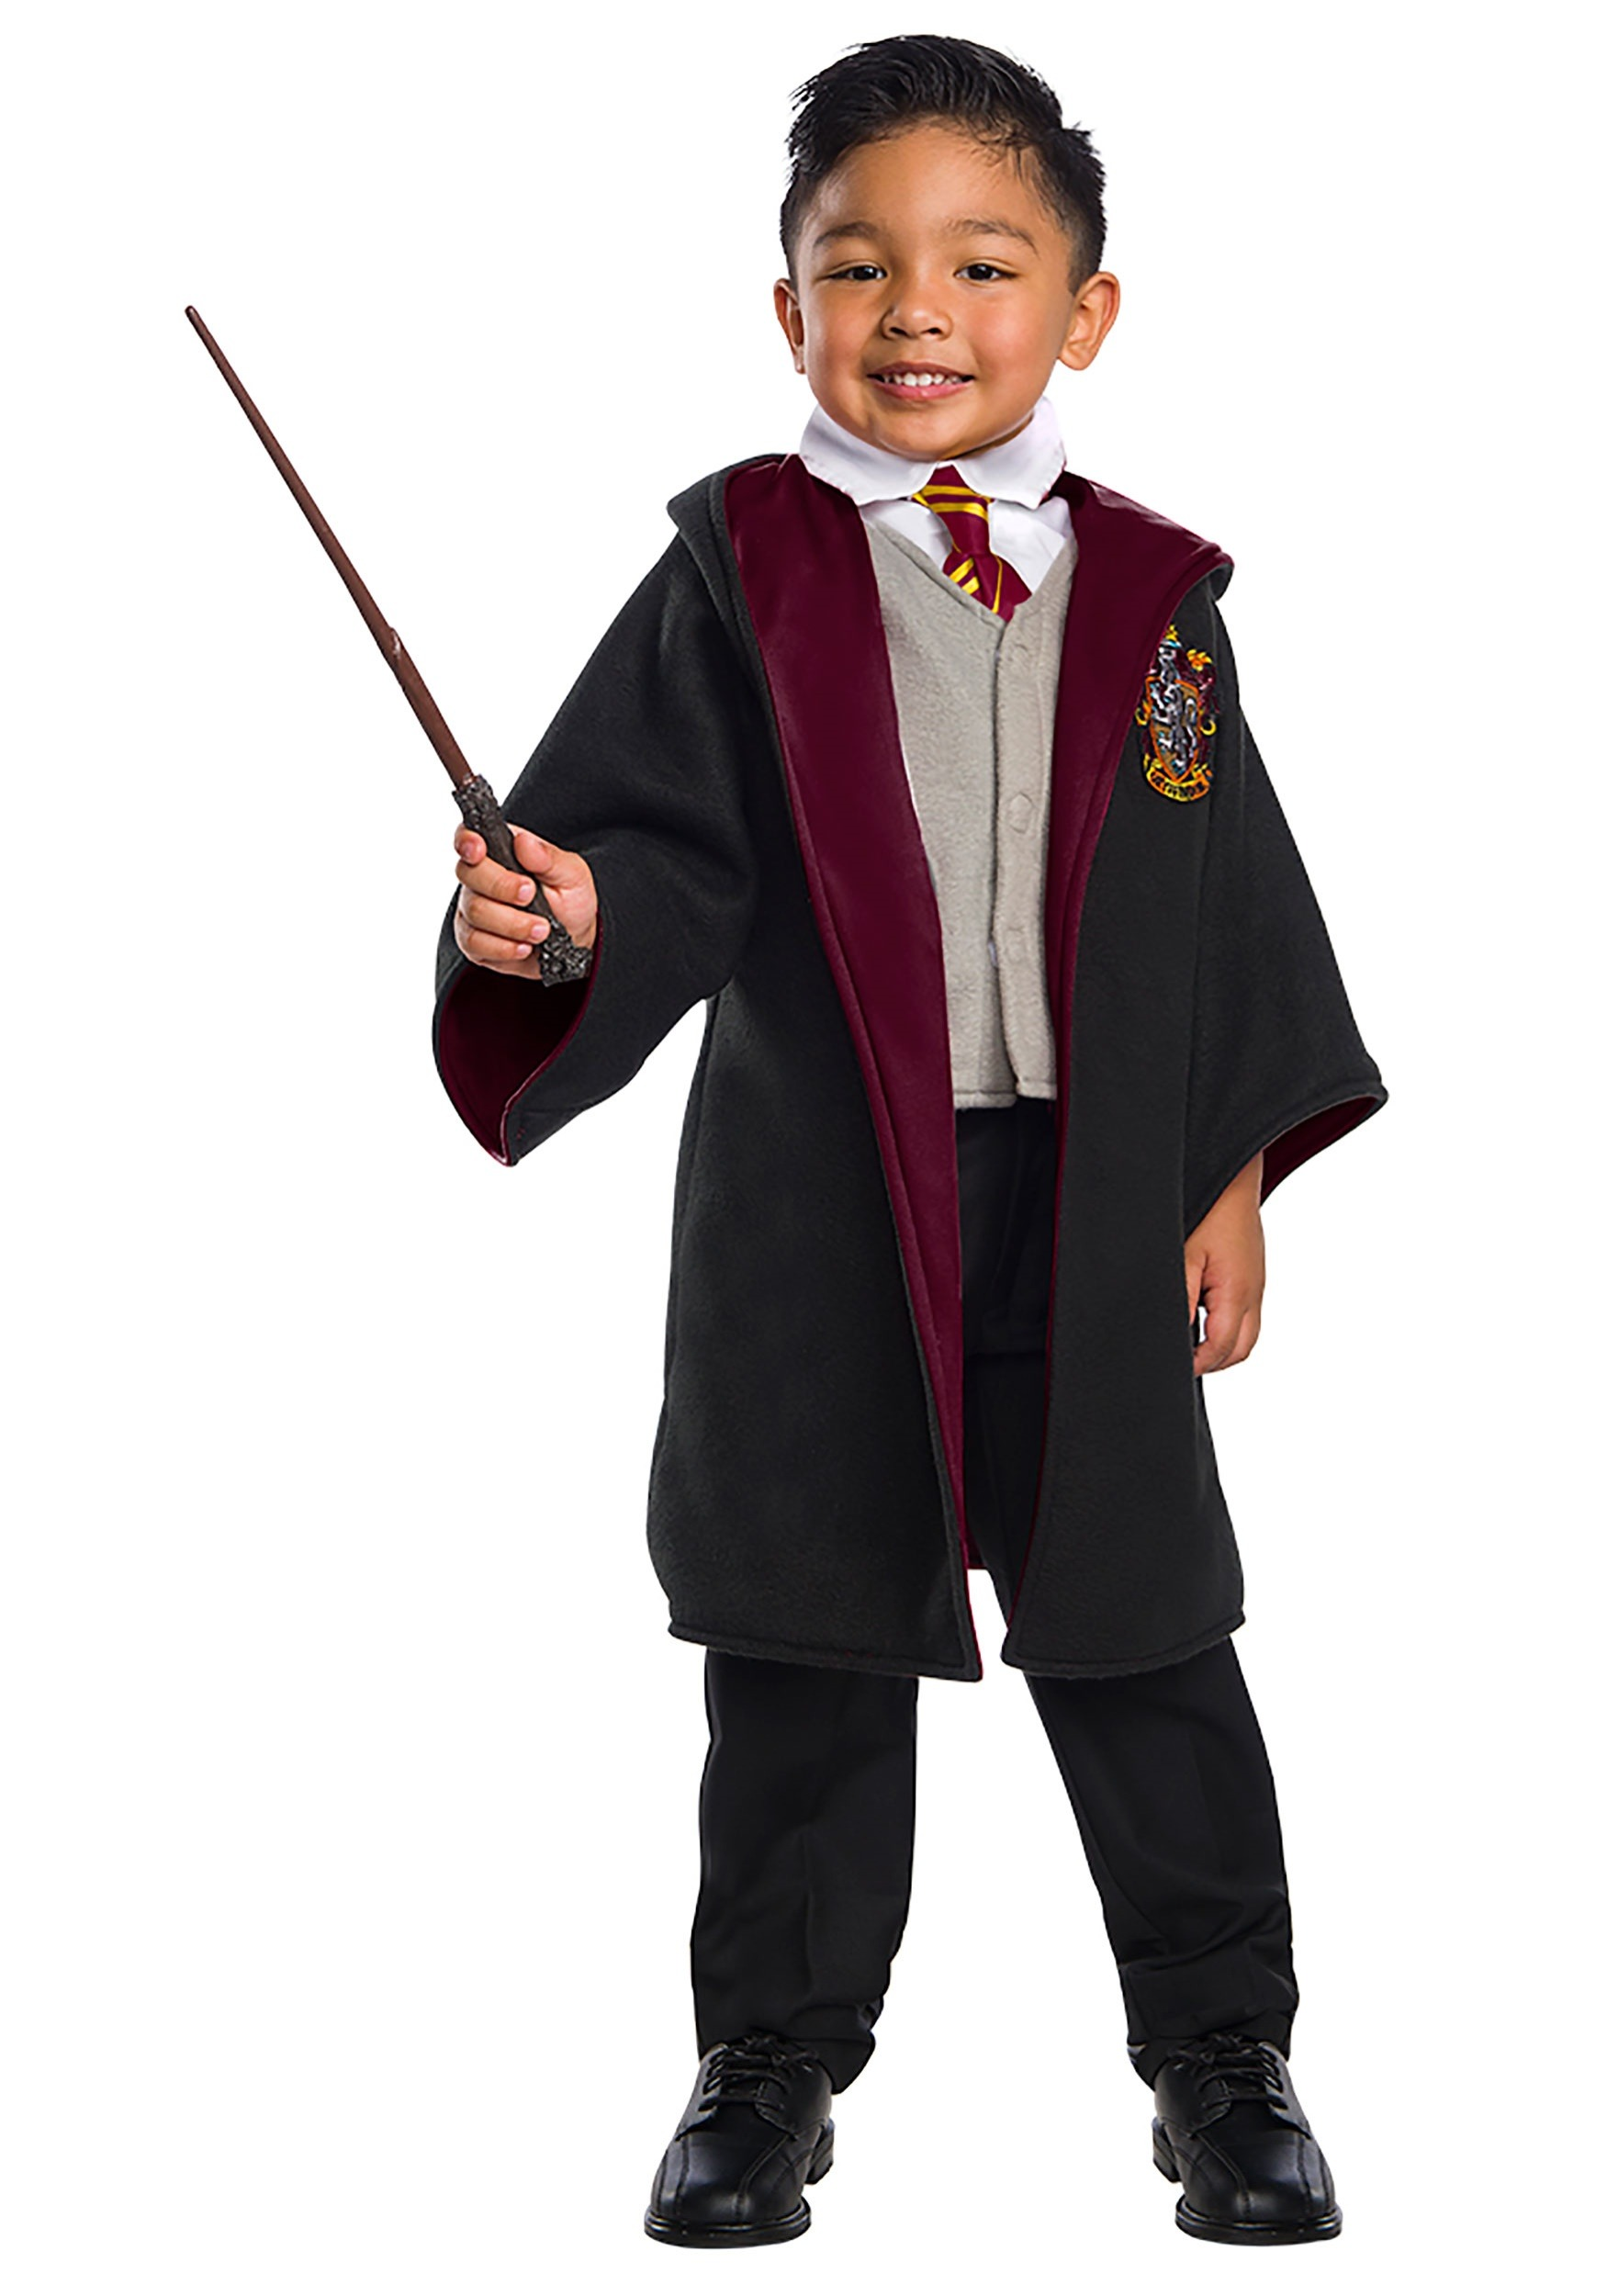 Harry Potter Toddler Uniform Harry Potter Toddler Uniform Alt 1